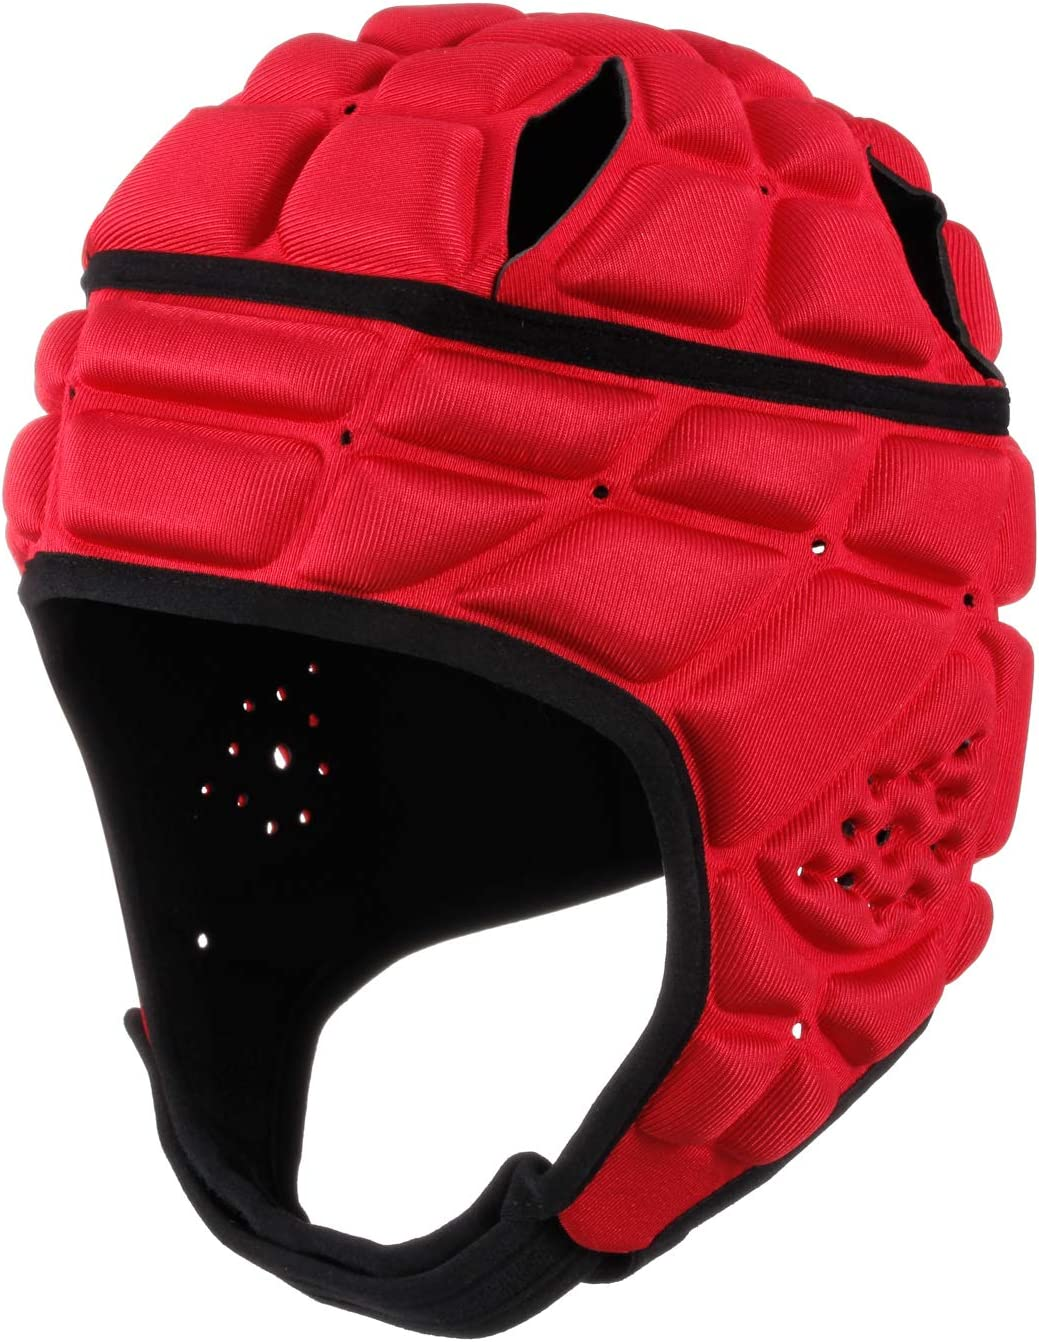 surlim Rugby Helmet Headguard Headgear for Soccer Scrum Cap Head Protector Soft Protective Helmet for Kids Youth